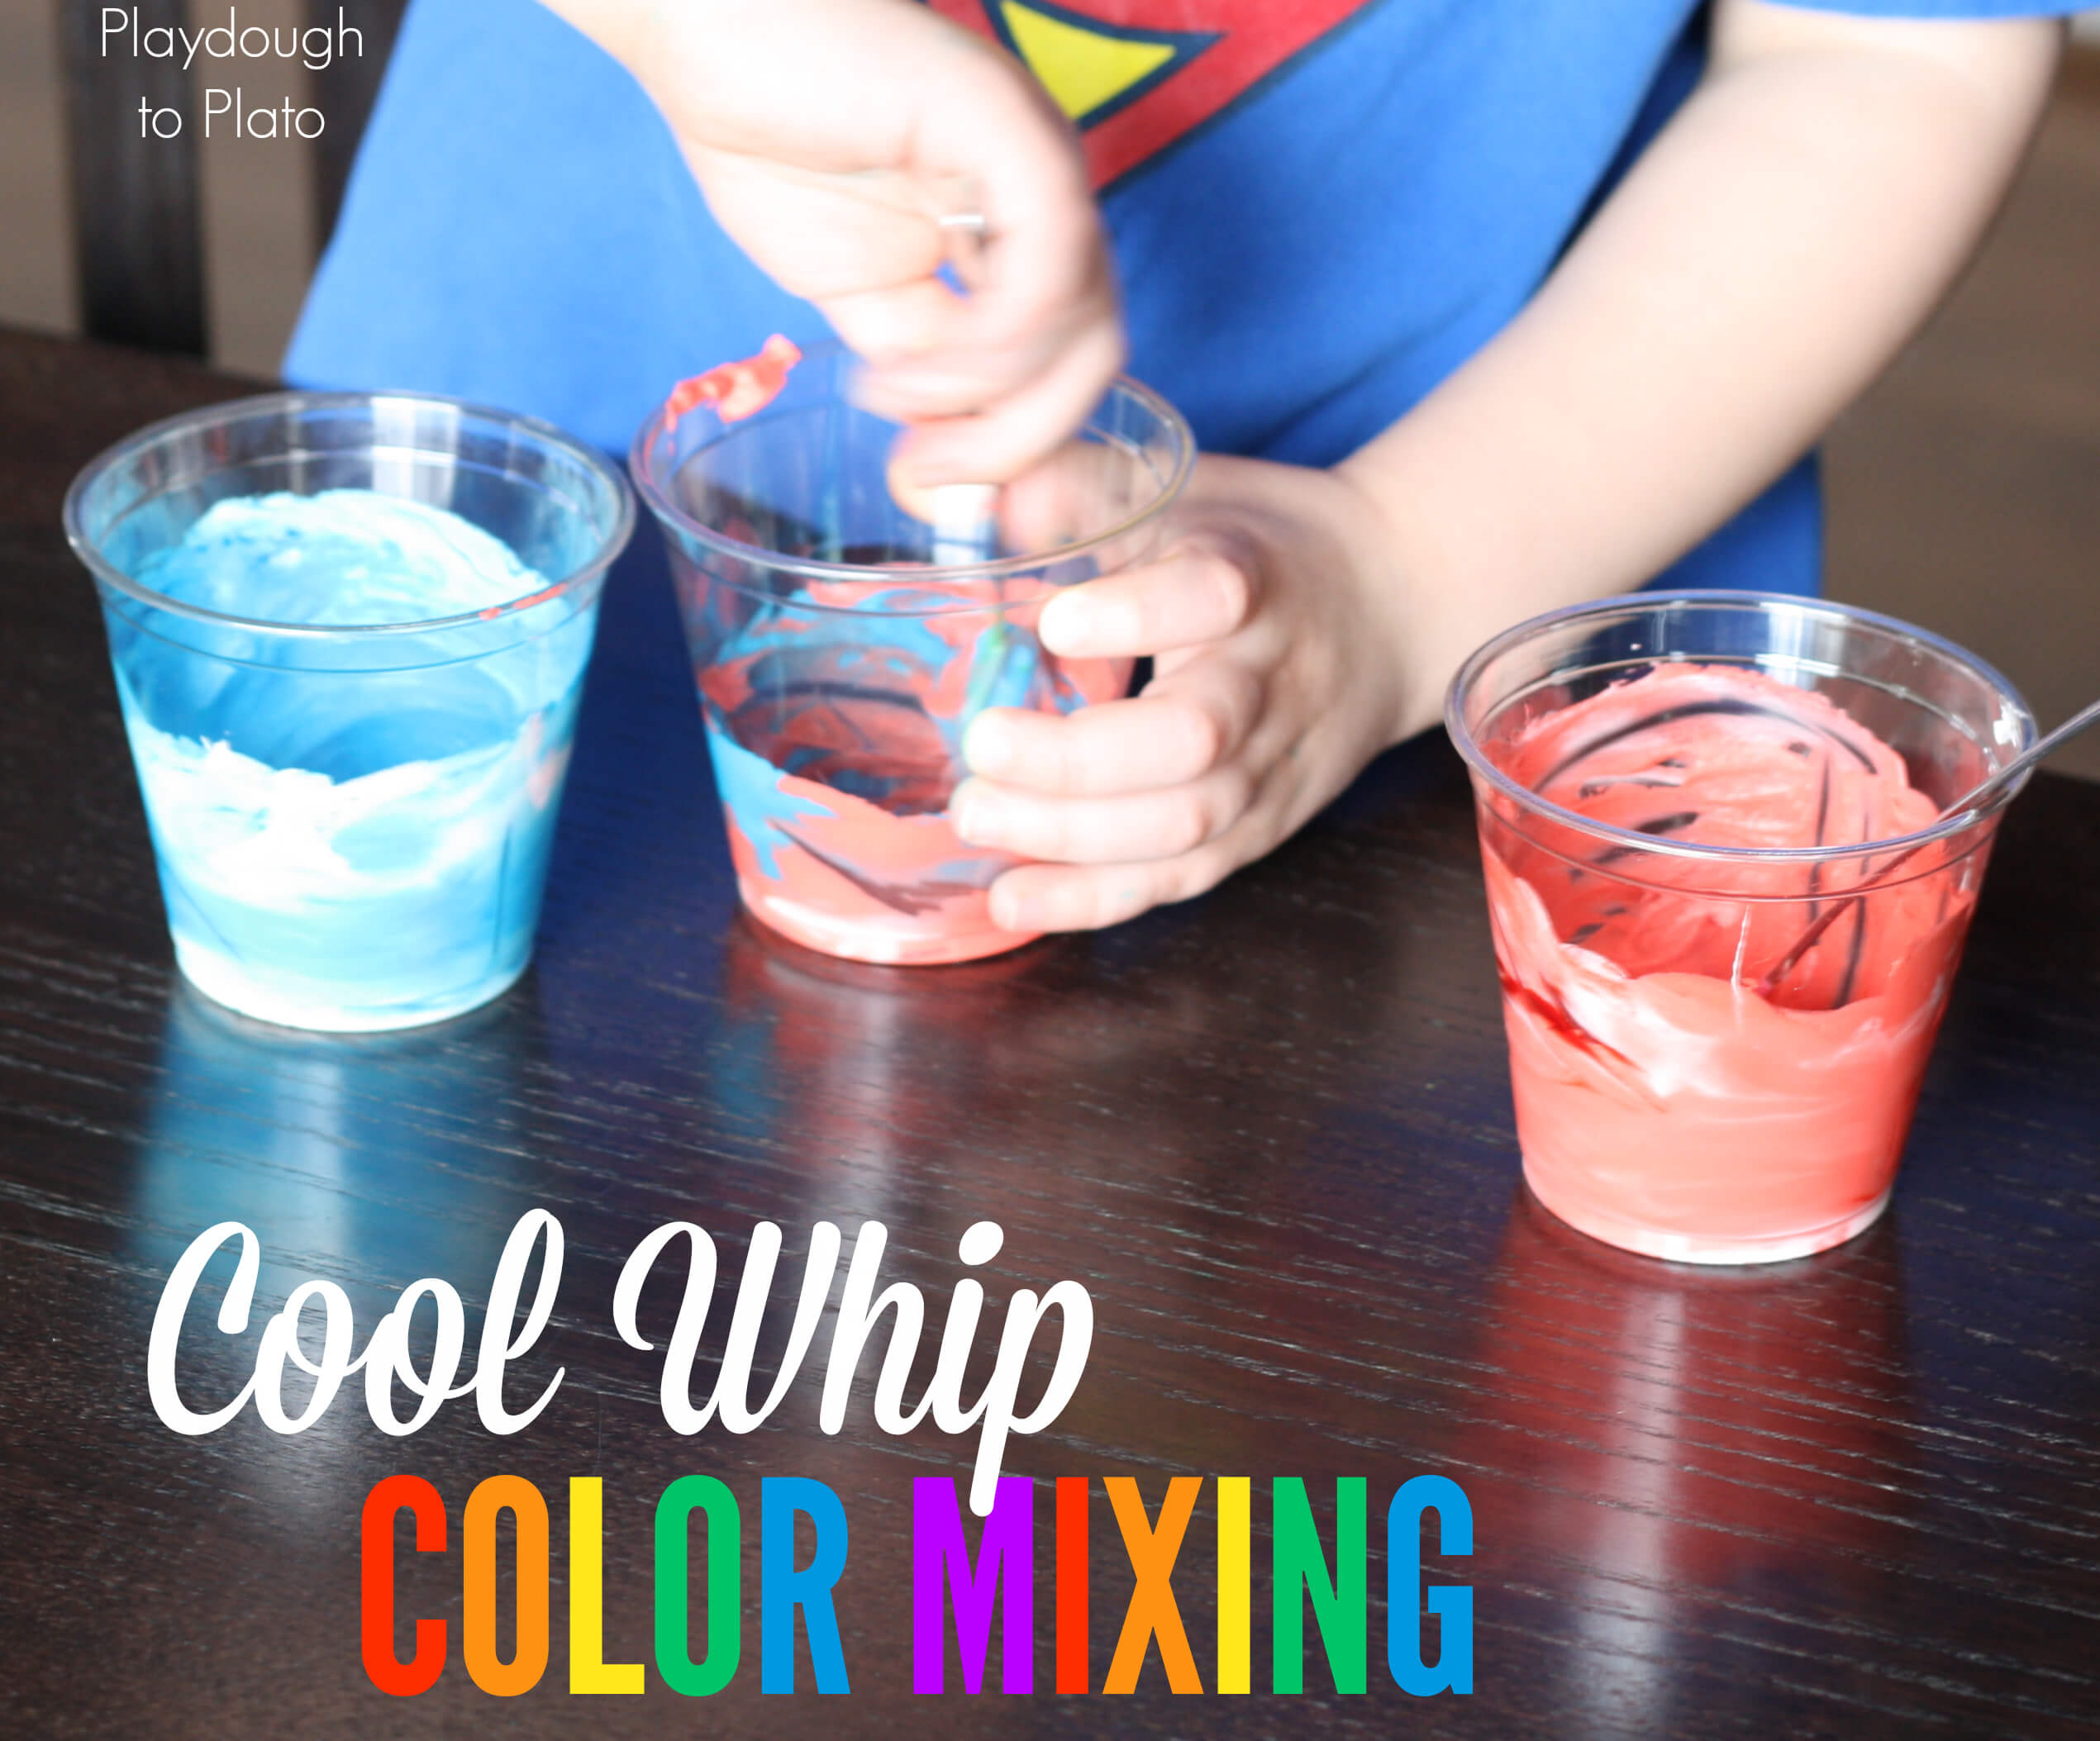 Learn Colors with Cool Whip